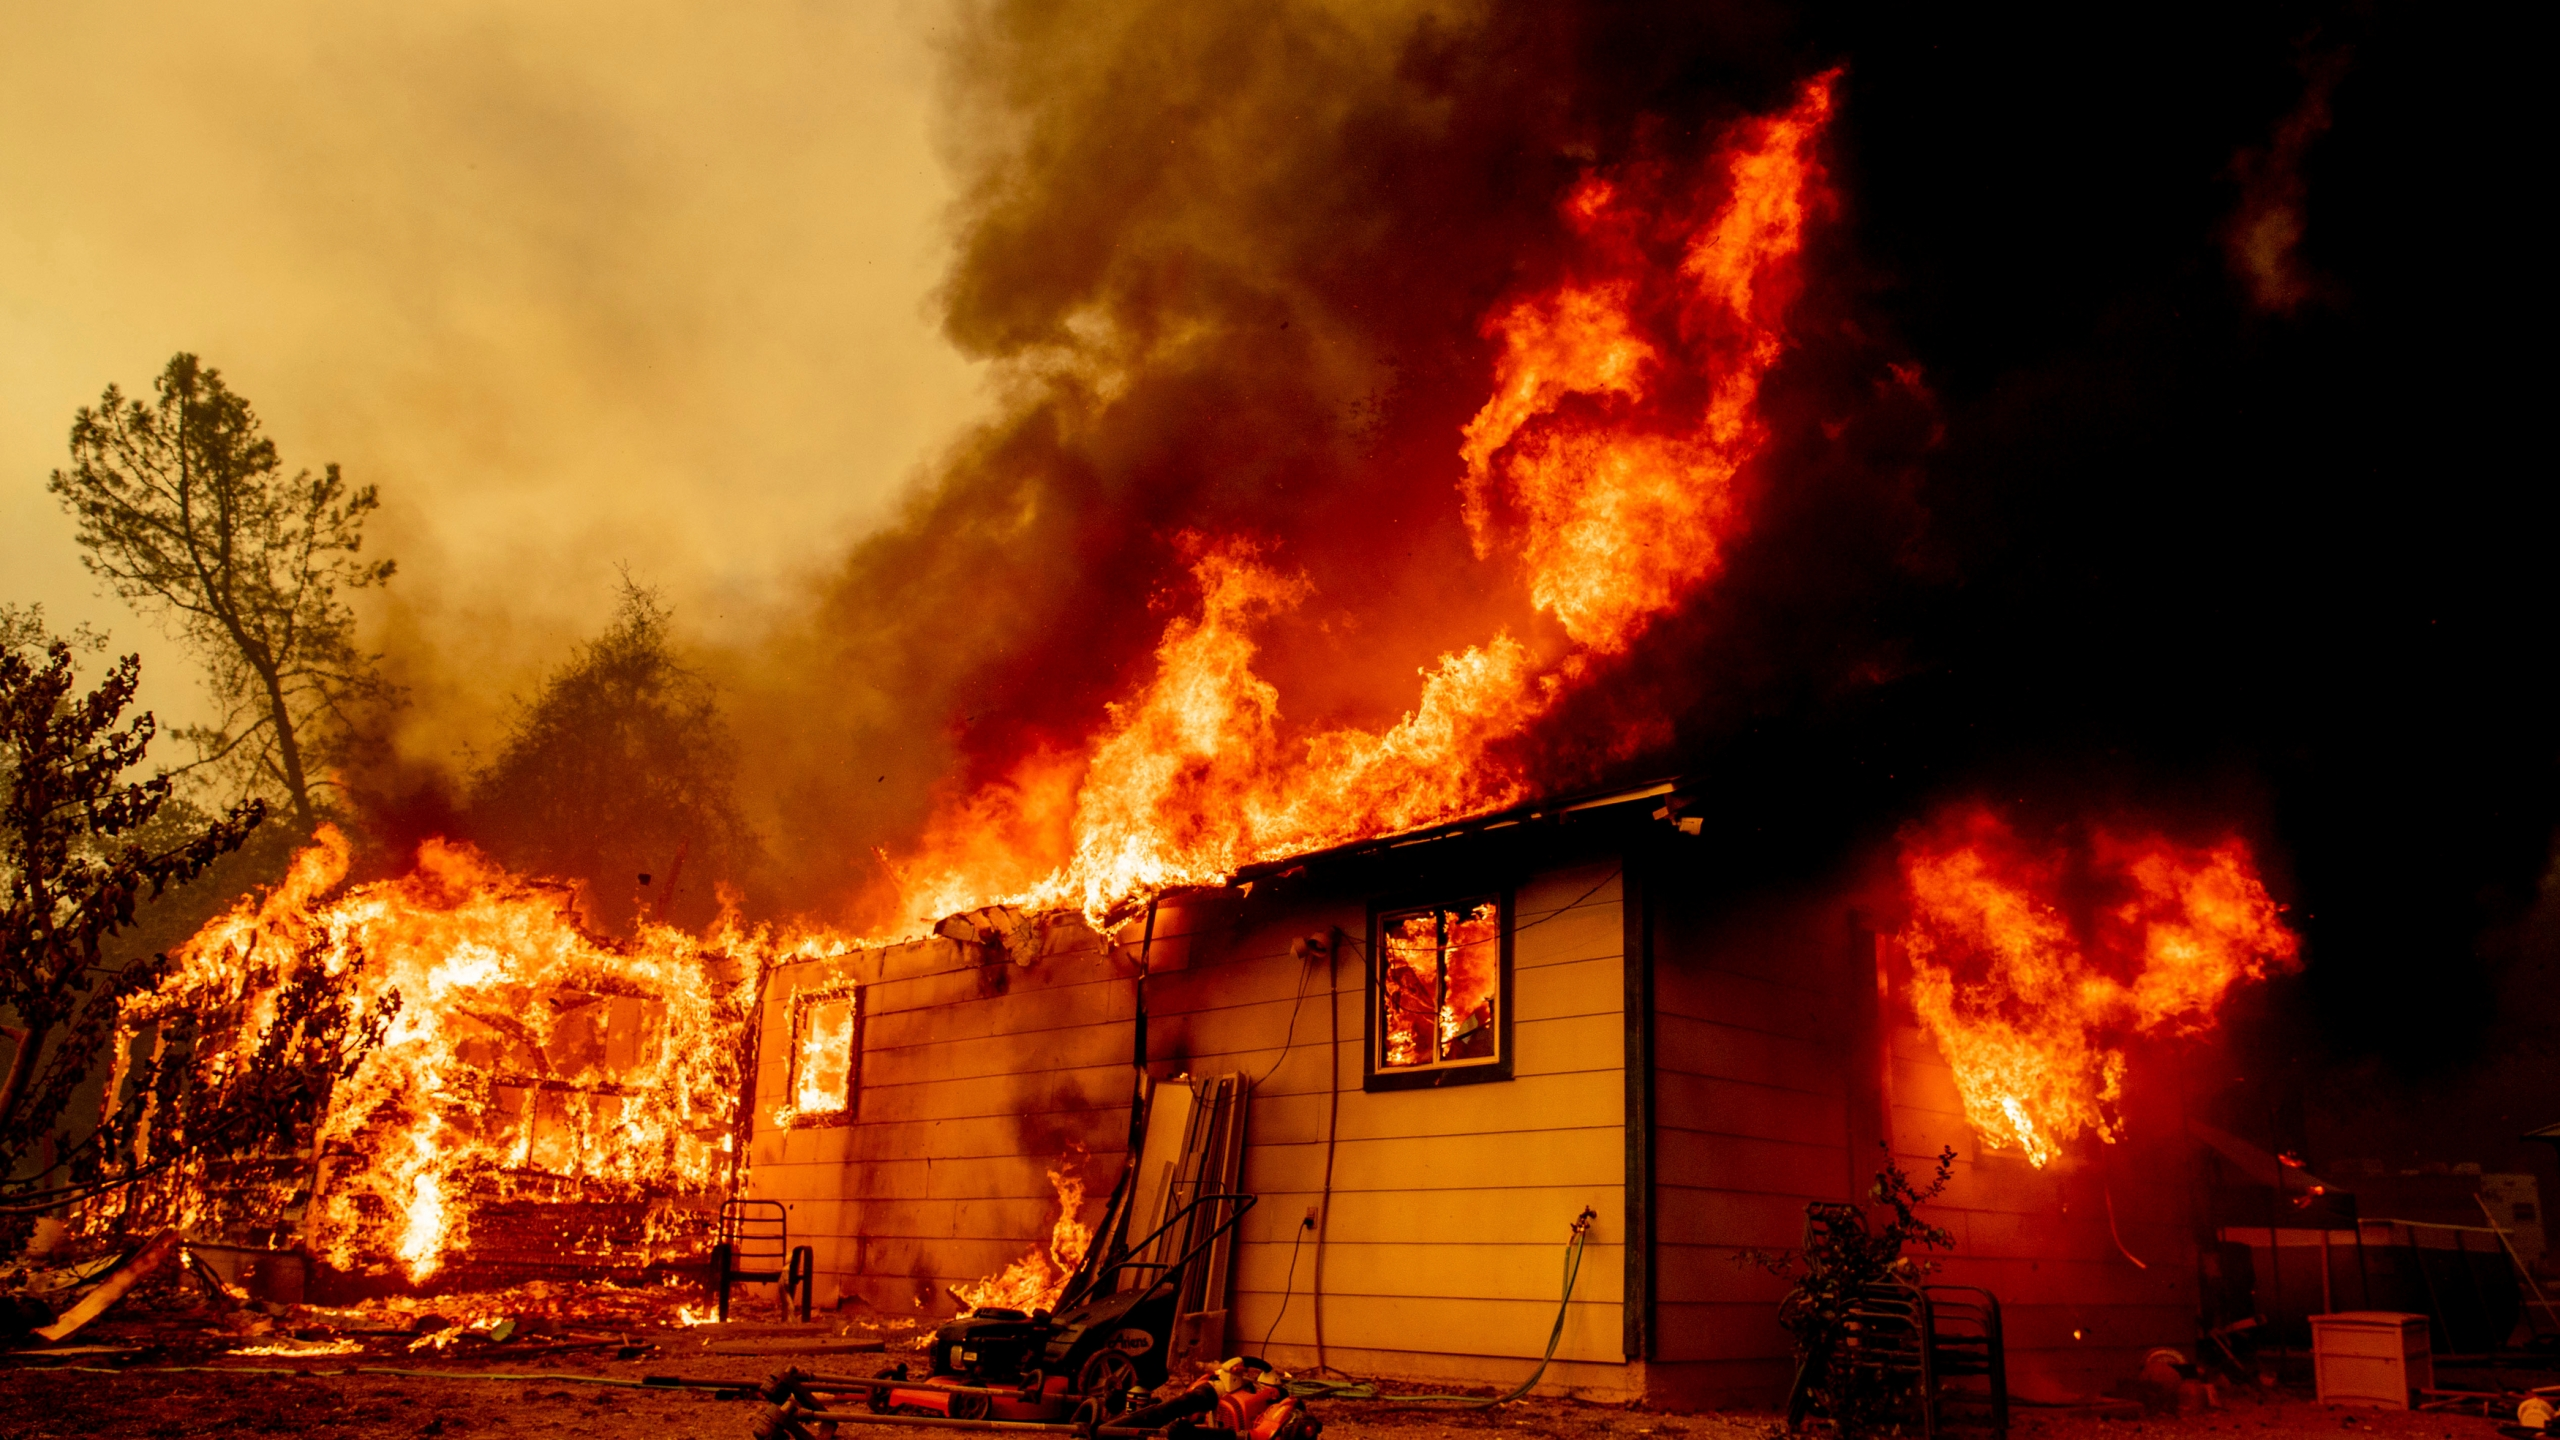 Flames consume a house near Old Oregon Trail as the Fawn Fire burns about 10 miles north of Redding in Shasta County, Calif., on Sep. 23, 2021. (Ethan Swope/Associated Press)